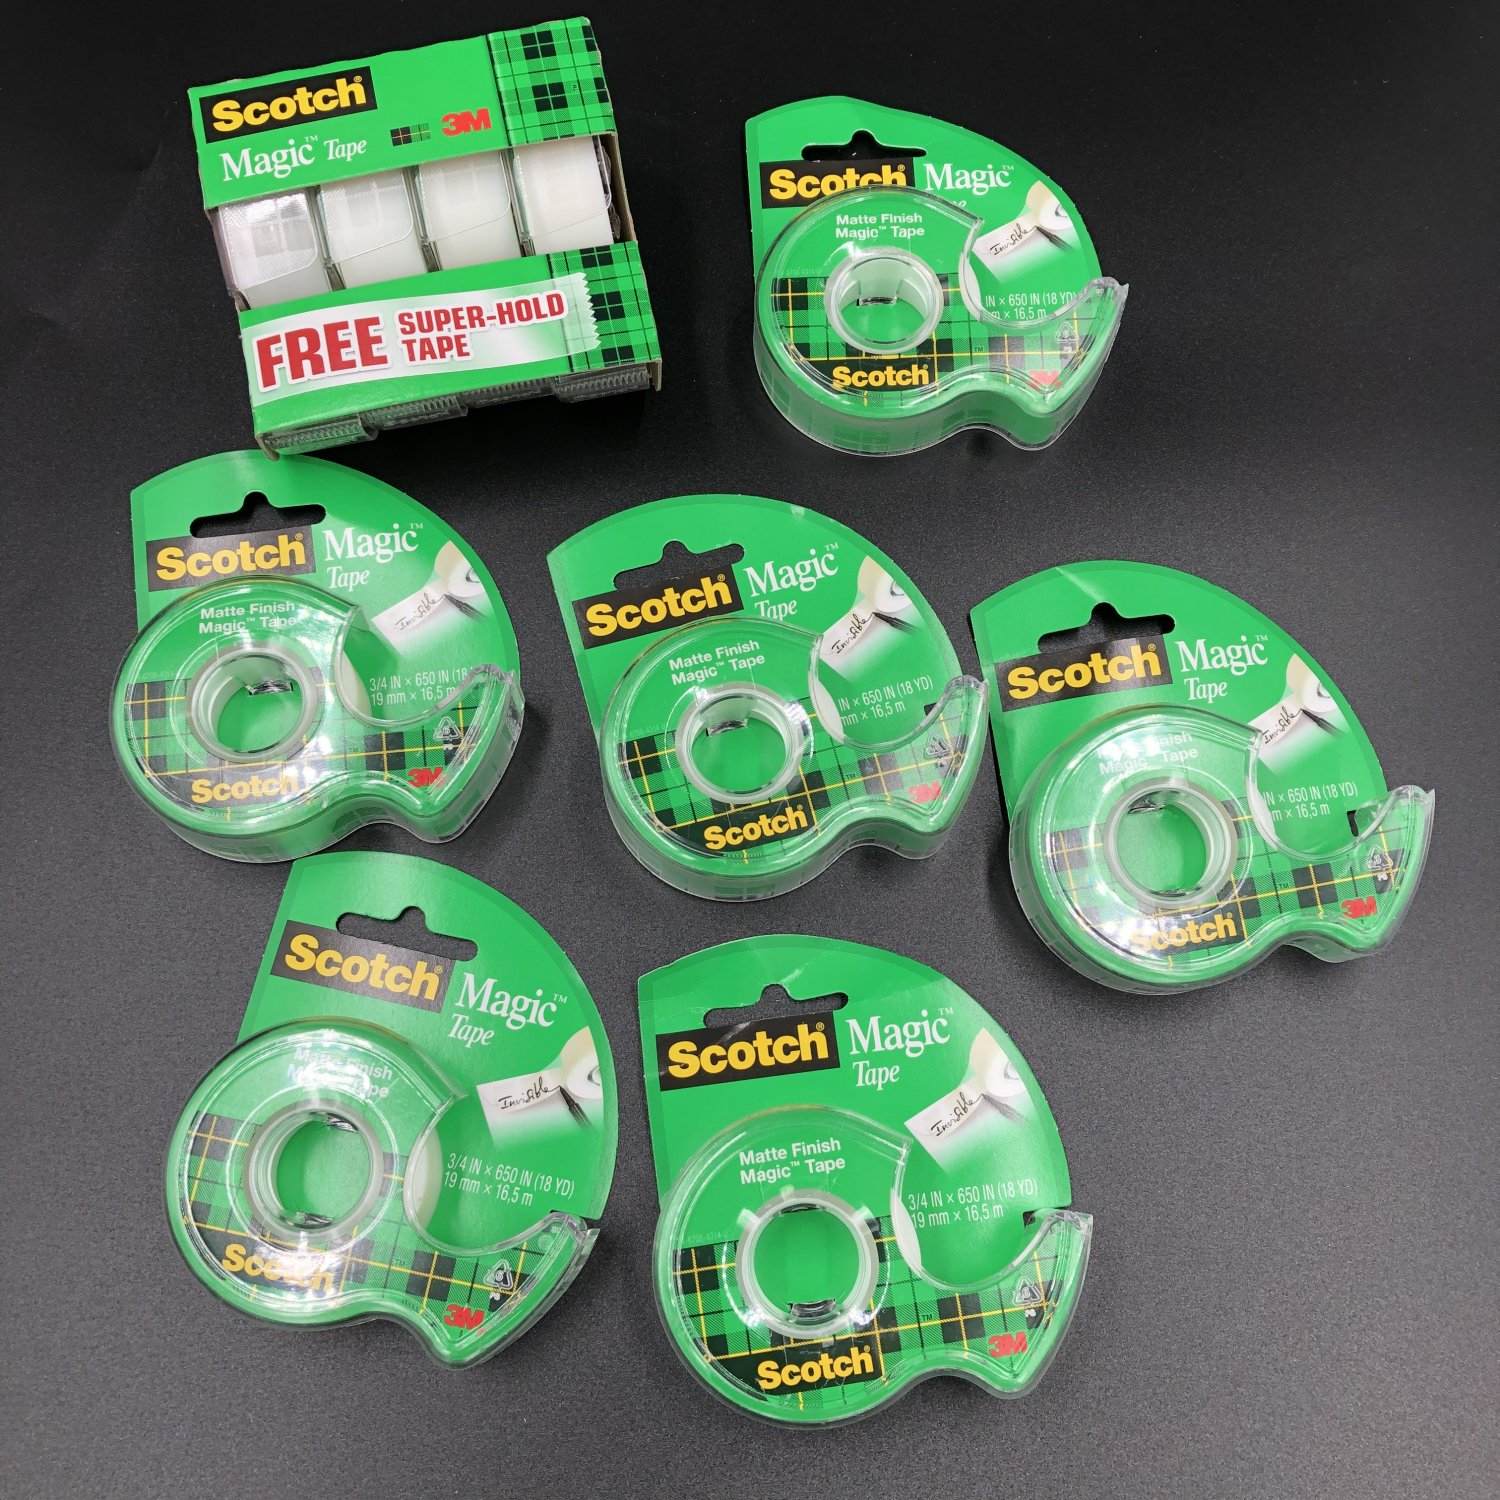 3M Scotch Magic Tape Bulk Lot